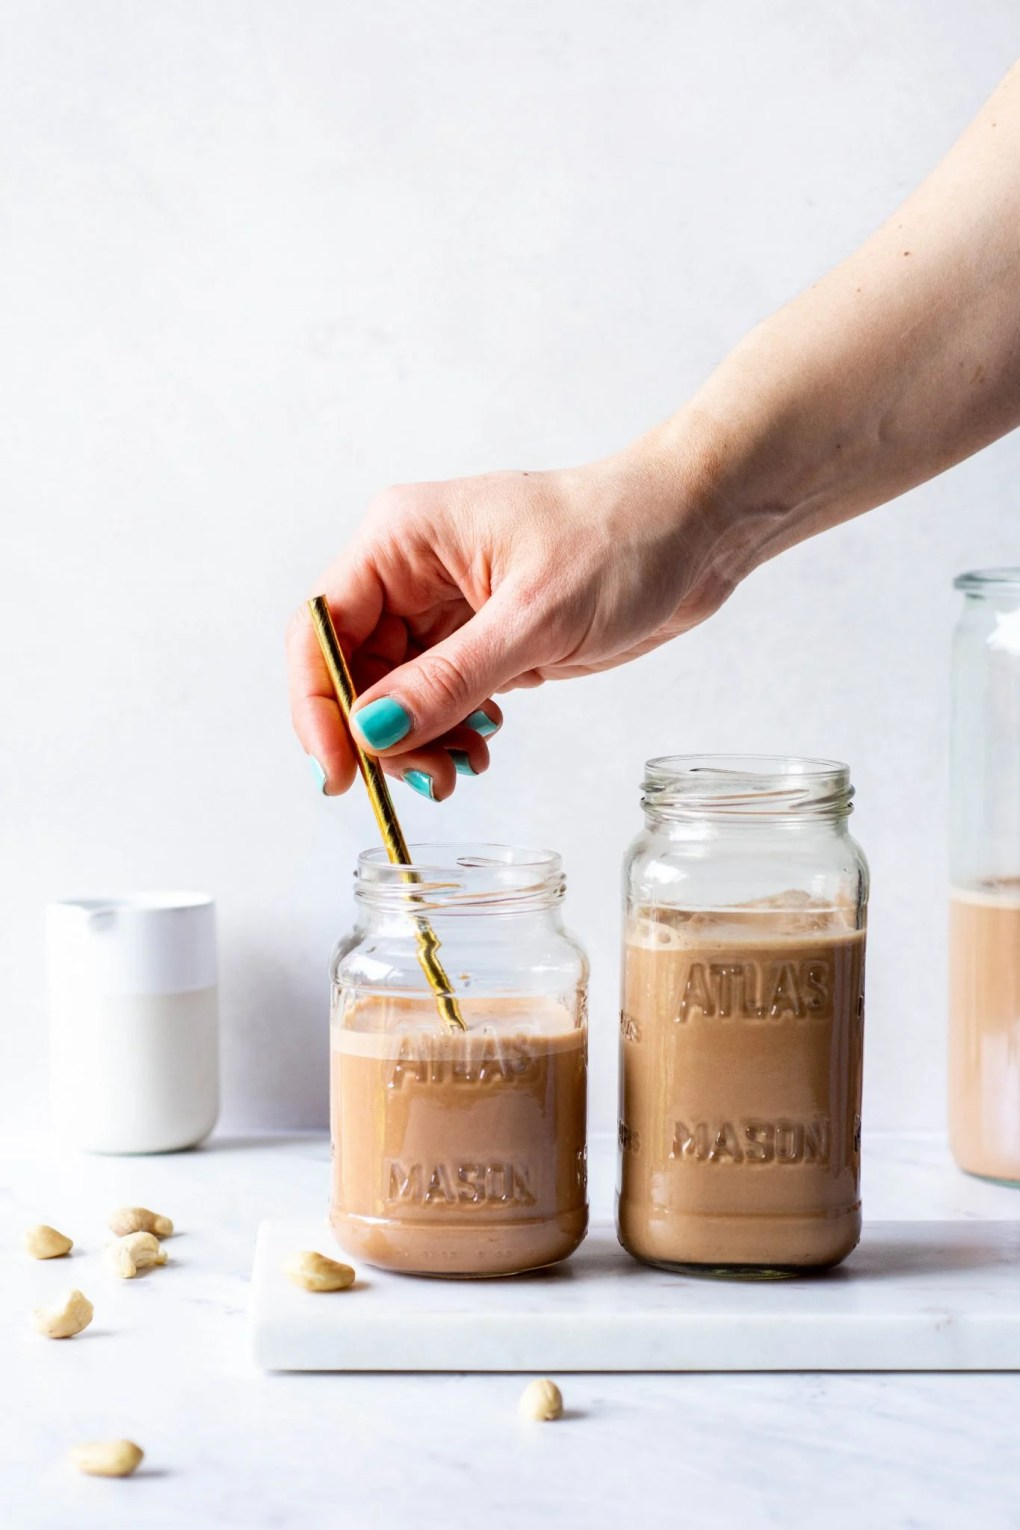 Placing a straw in one of two side by side glasses of chocolate cashew milk on a white background